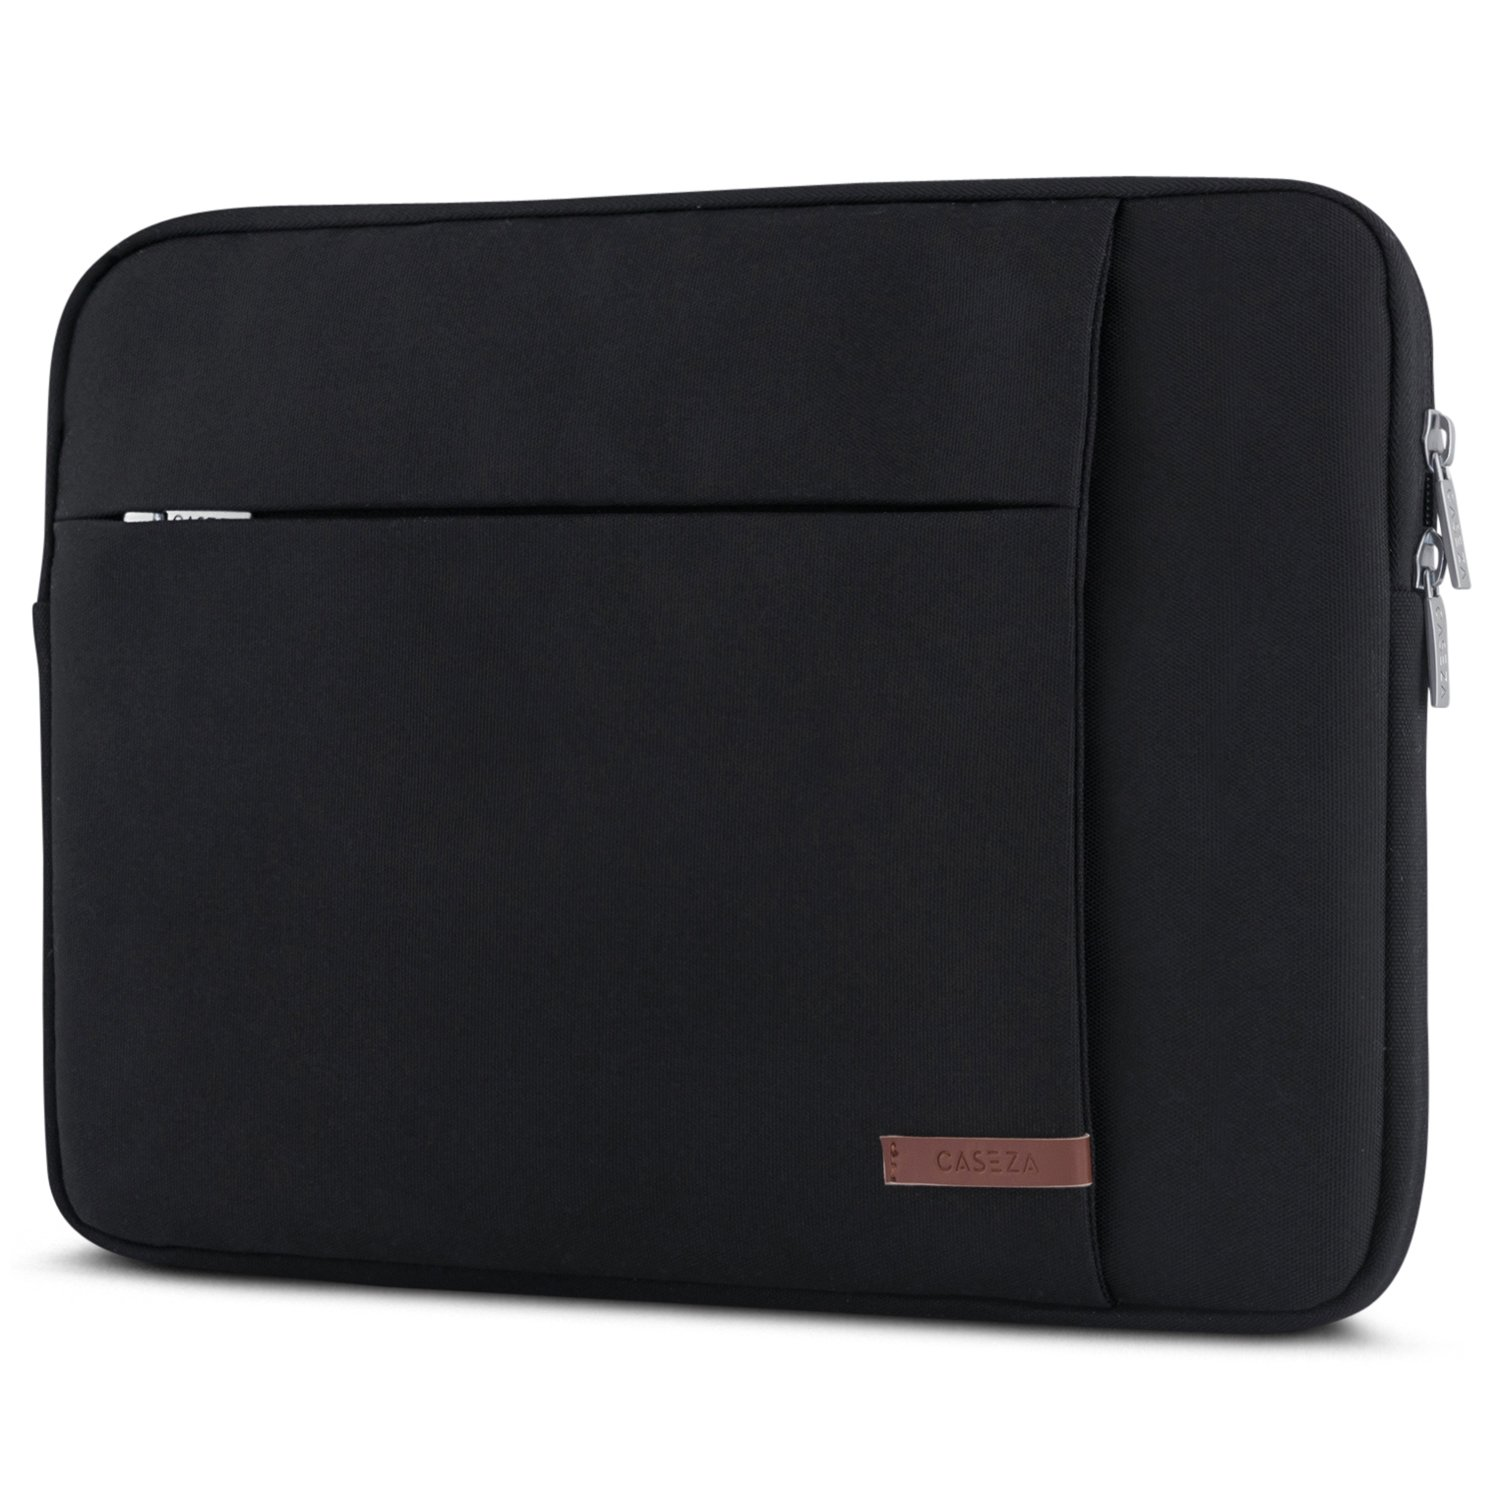 Laptop Sleeve 14 Inch/MacBook Pro 15'' Black - CASEZA London Notebook Bag for 14'' Laptops, MacBook Pro 15'', Dell XPS 15, HP Acer Asus & more - Water Resistant 14'' Ultrabook Case with Two Pockets